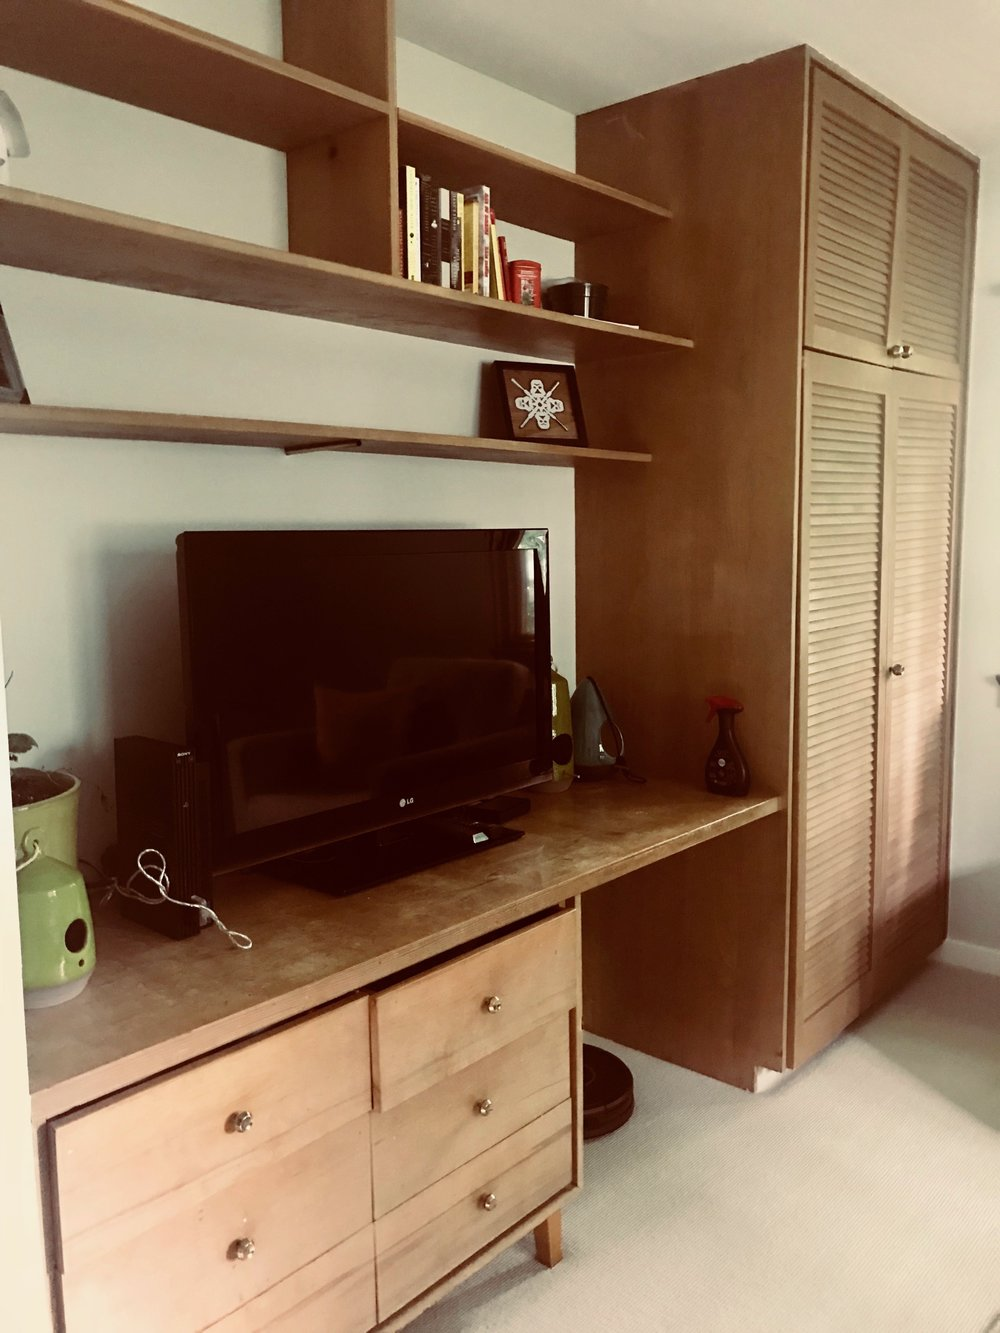 ORIGINAL BUILT-IN DESK, SHELVES AND WARDROBE